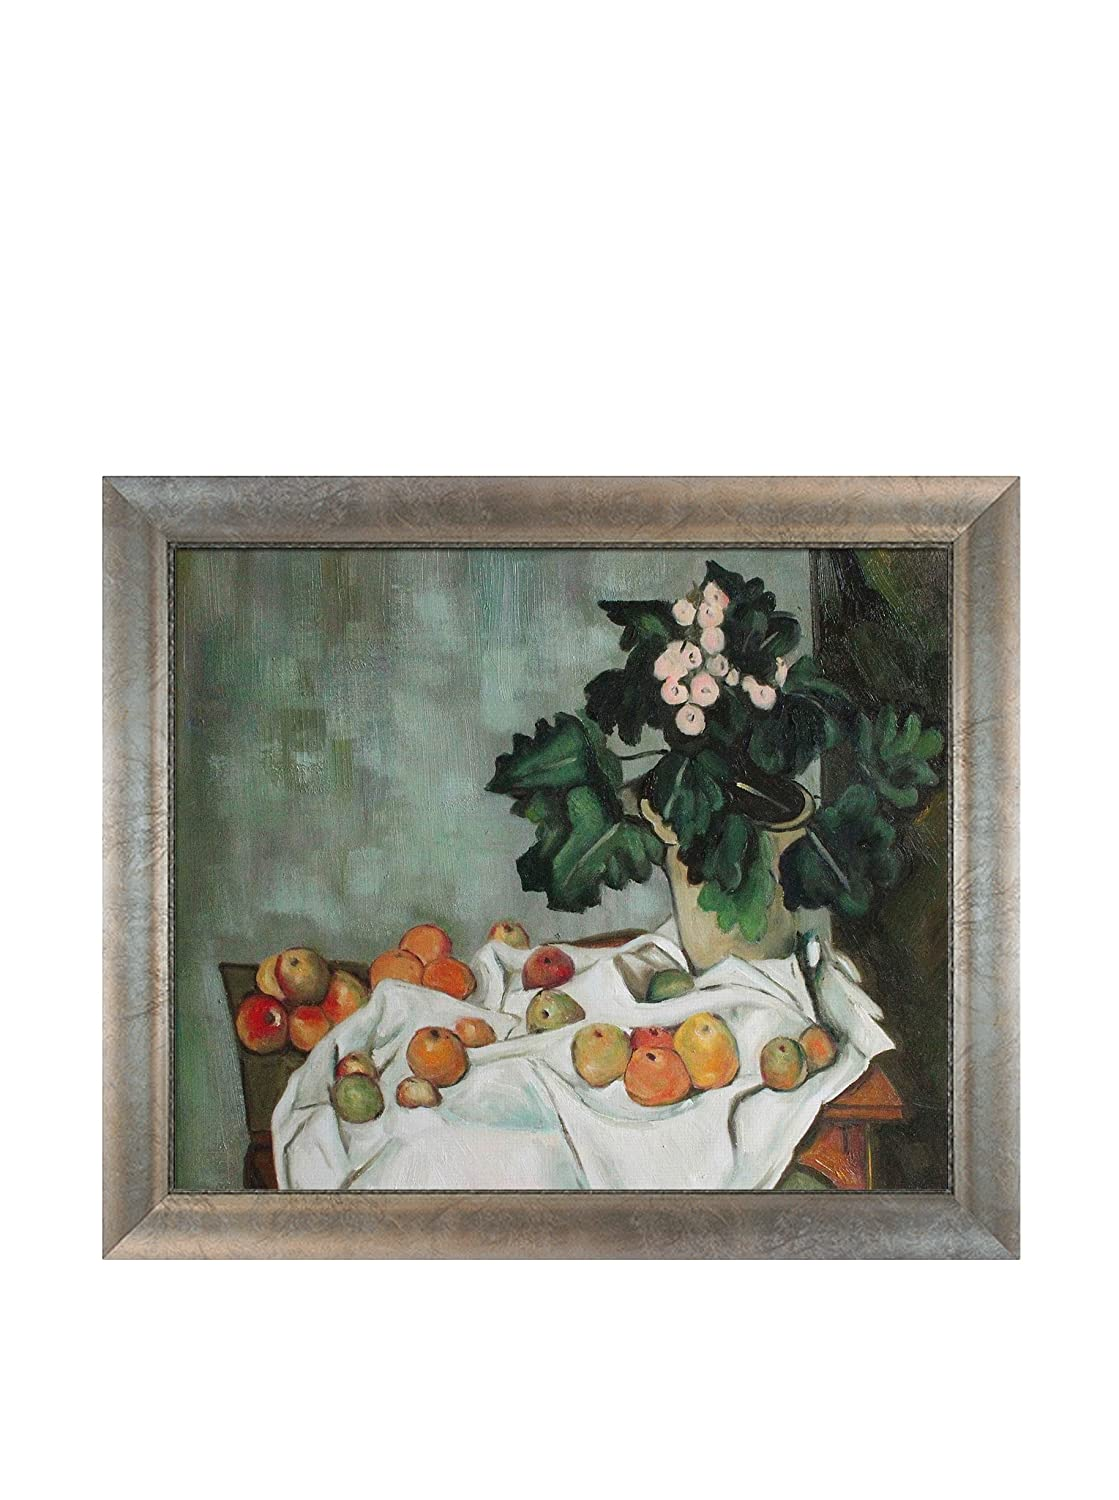 Silver Frame with Champagne Highlights overstockArt Still Life Oil Painting with Apples and a Pot of Primroses with Silver Scoop with Swirl Lip by Cezanne